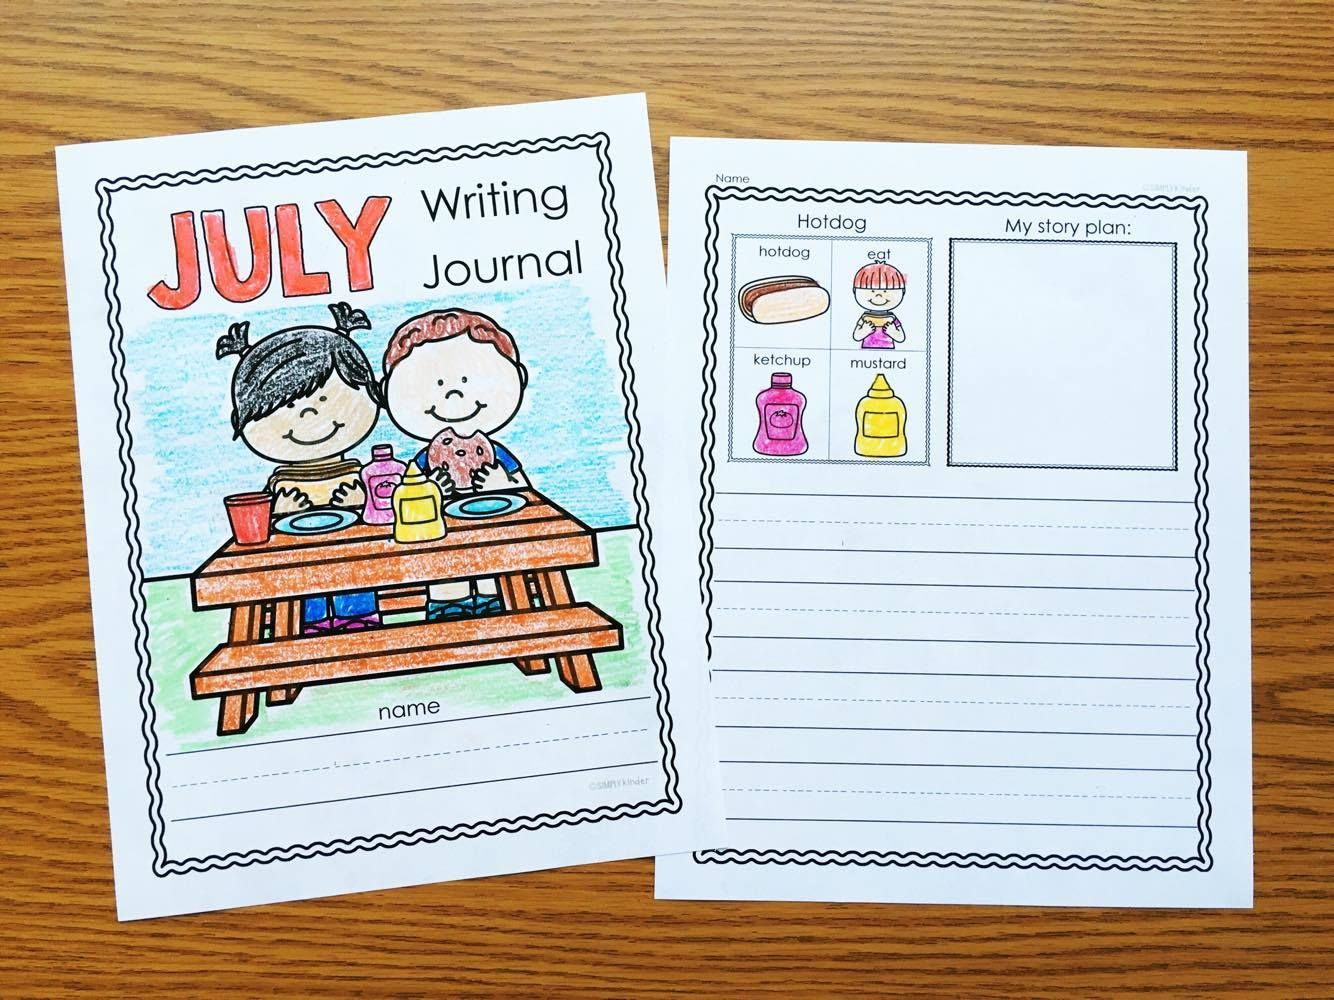 July Writing Journals